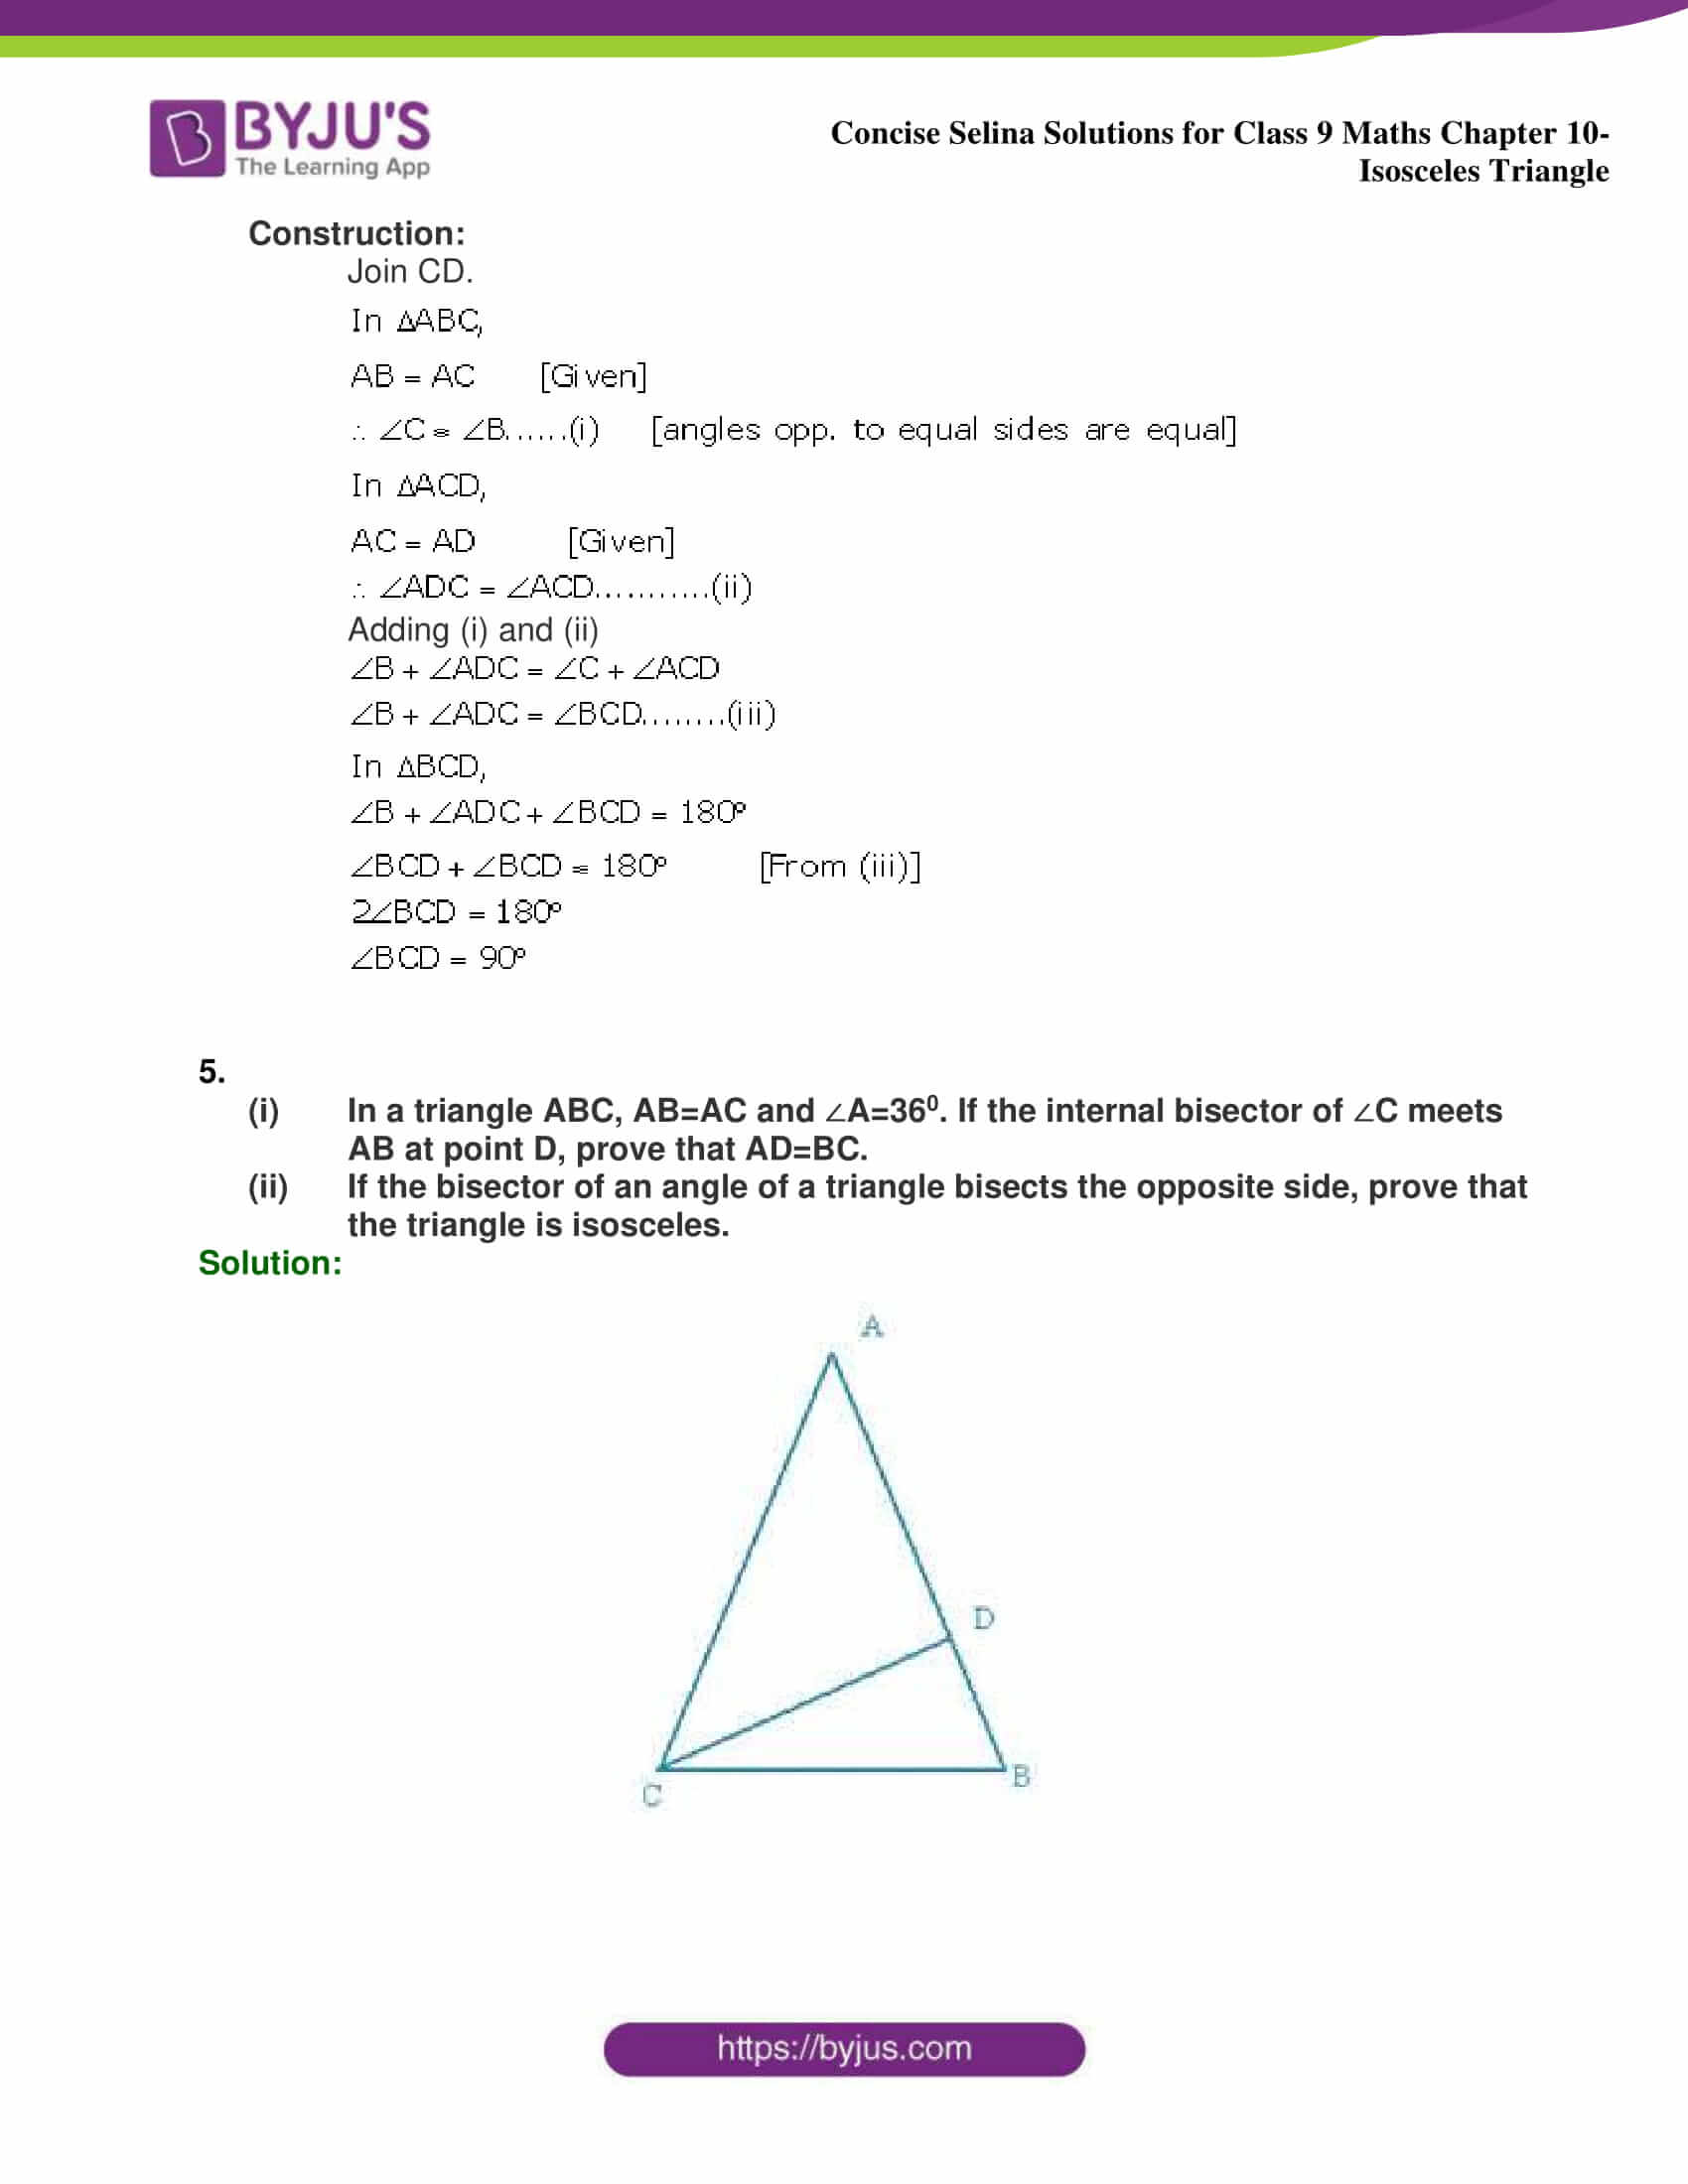 selina Solutions for Class 9 Maths Chapter 10 part 25